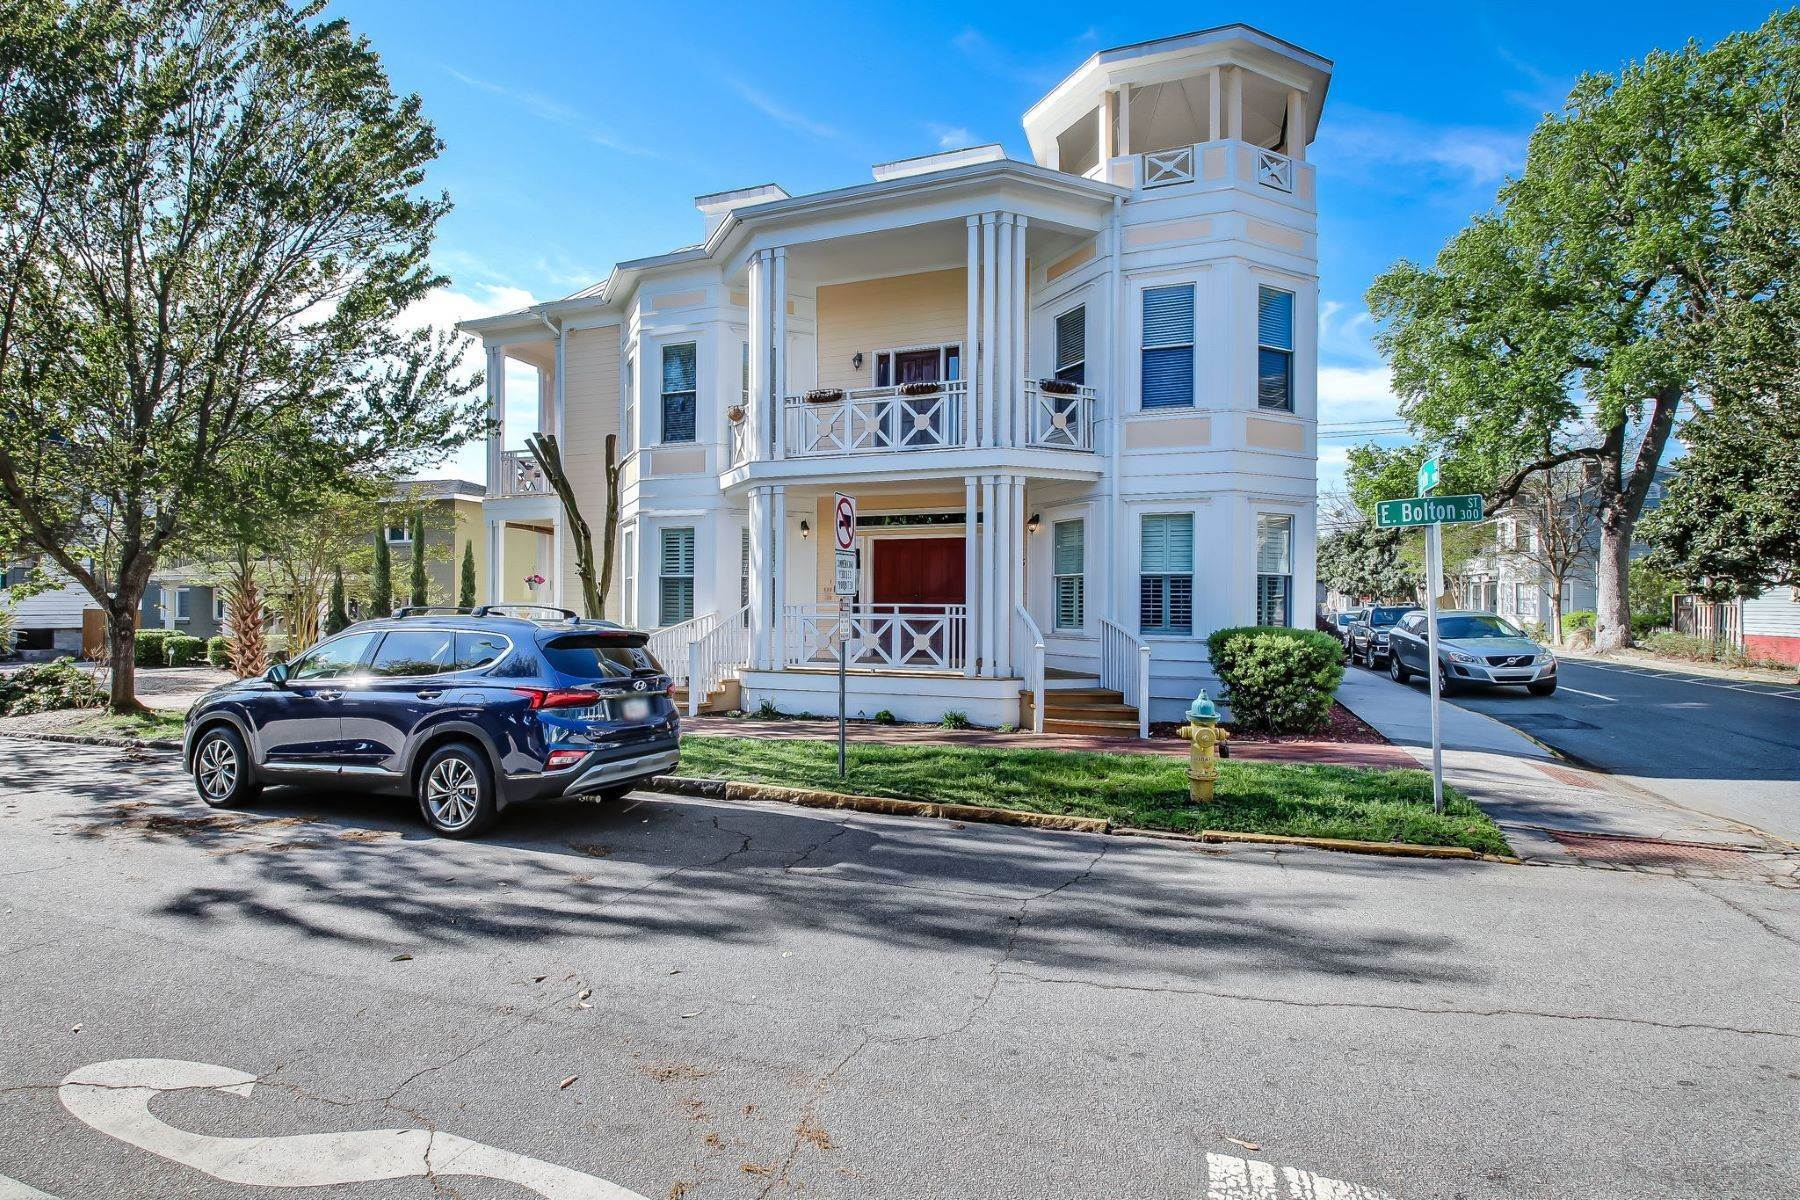 2. Condominiums for Sale at 305 E Bolton Street #101 Savannah, Georgia 31401 United States